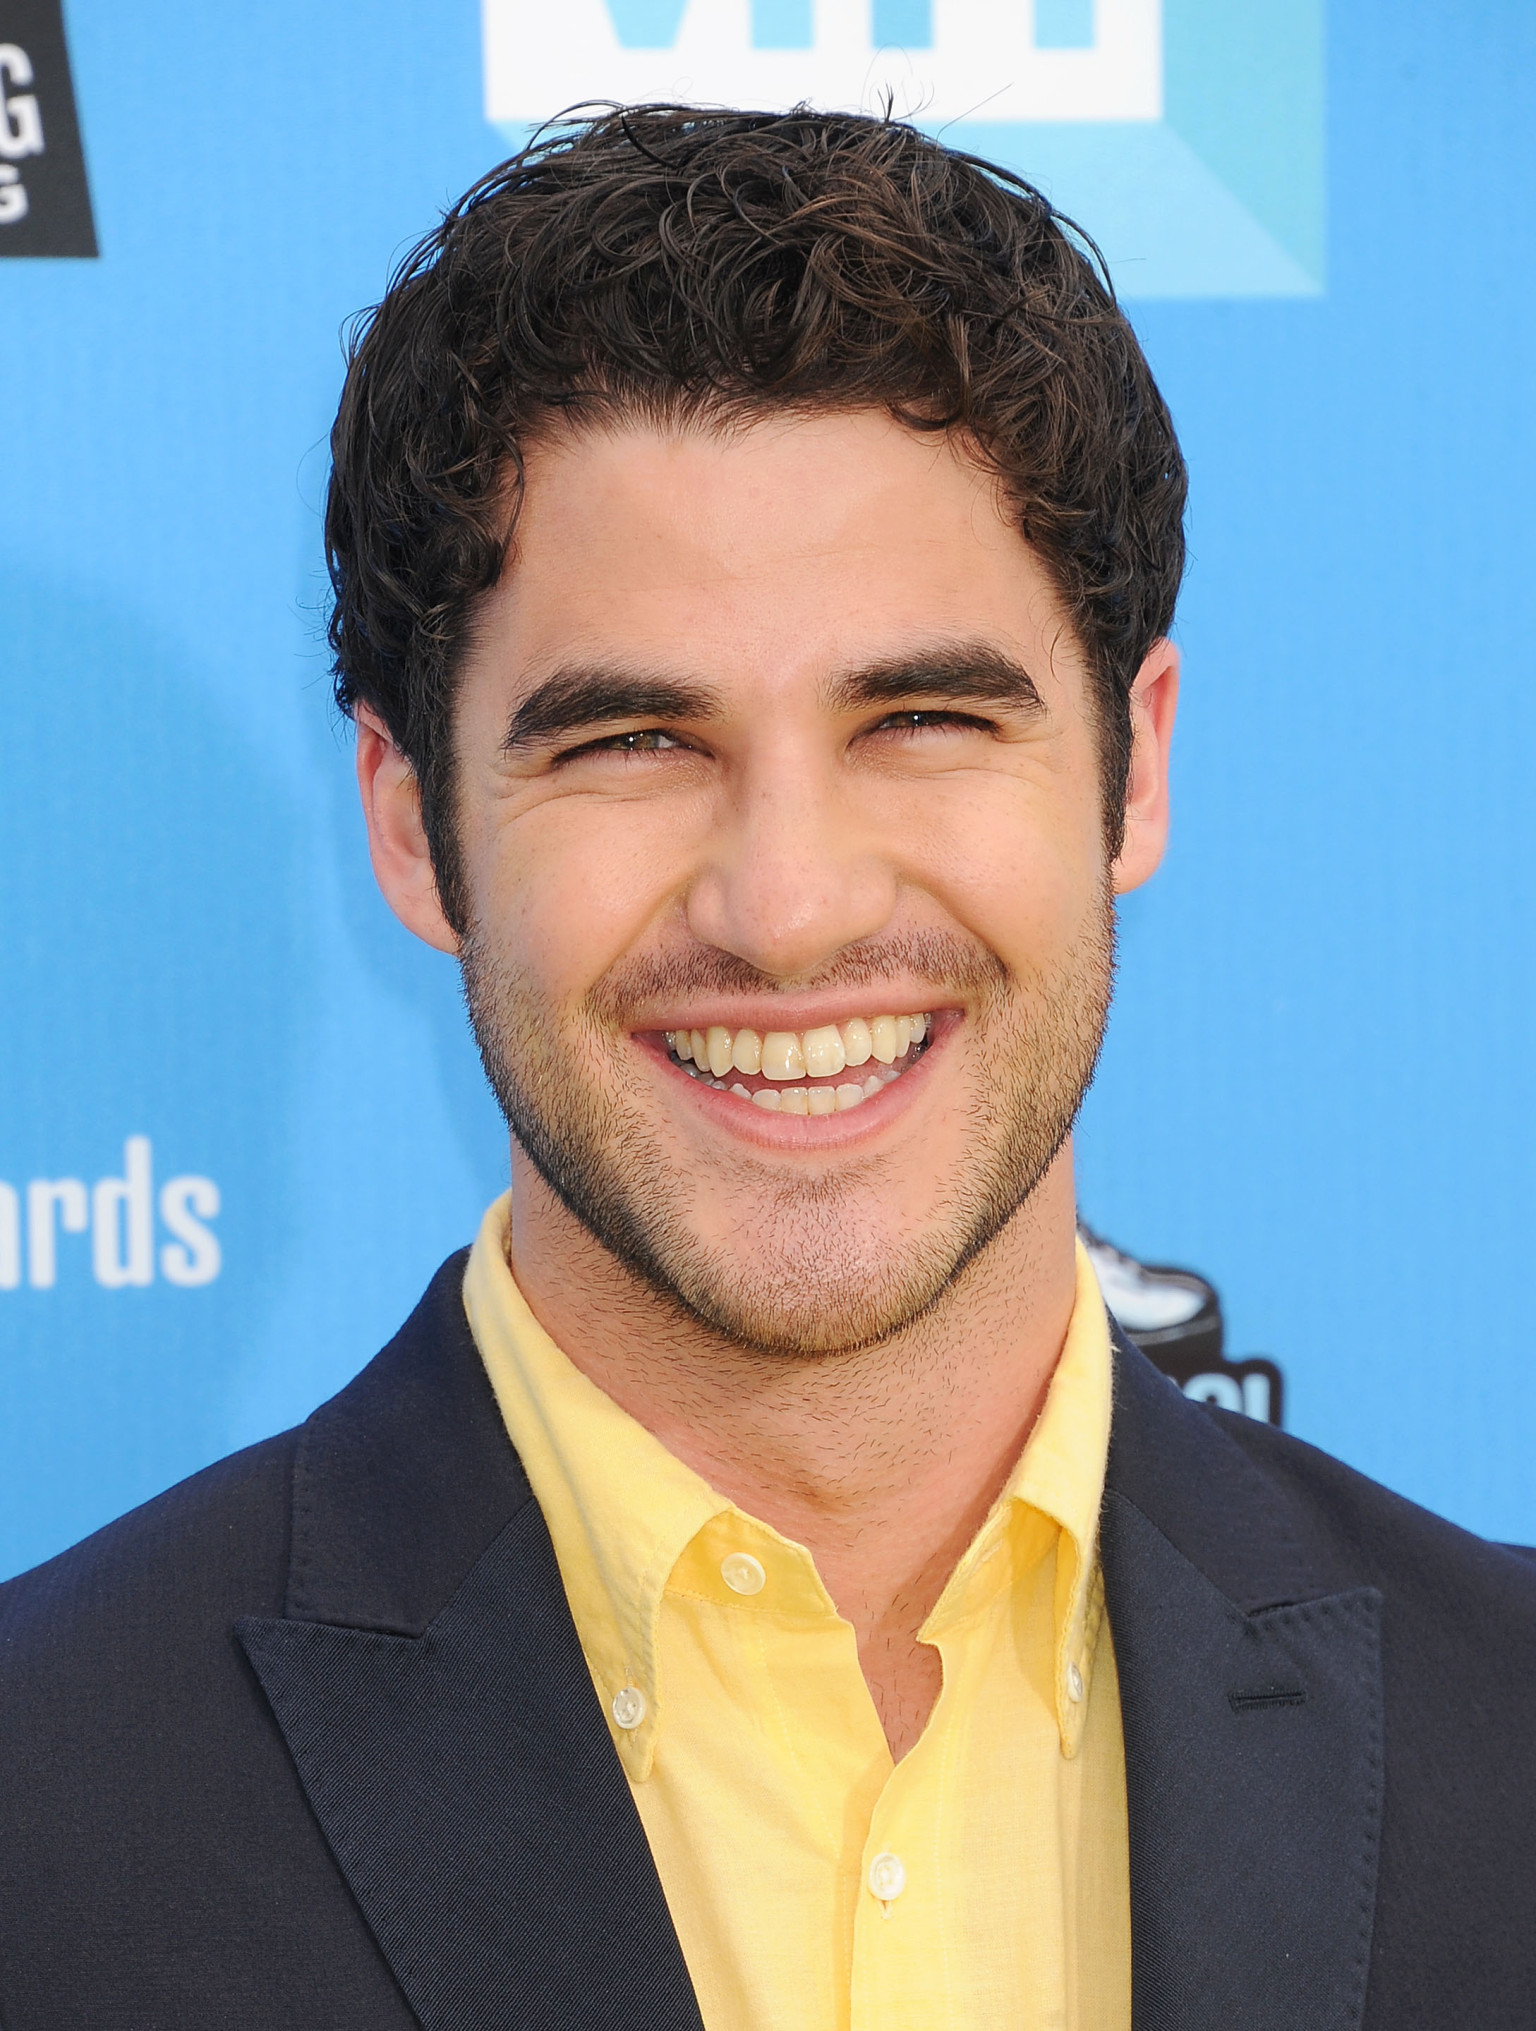 Darren Criss Biography - Facts, Childhood, Family Life